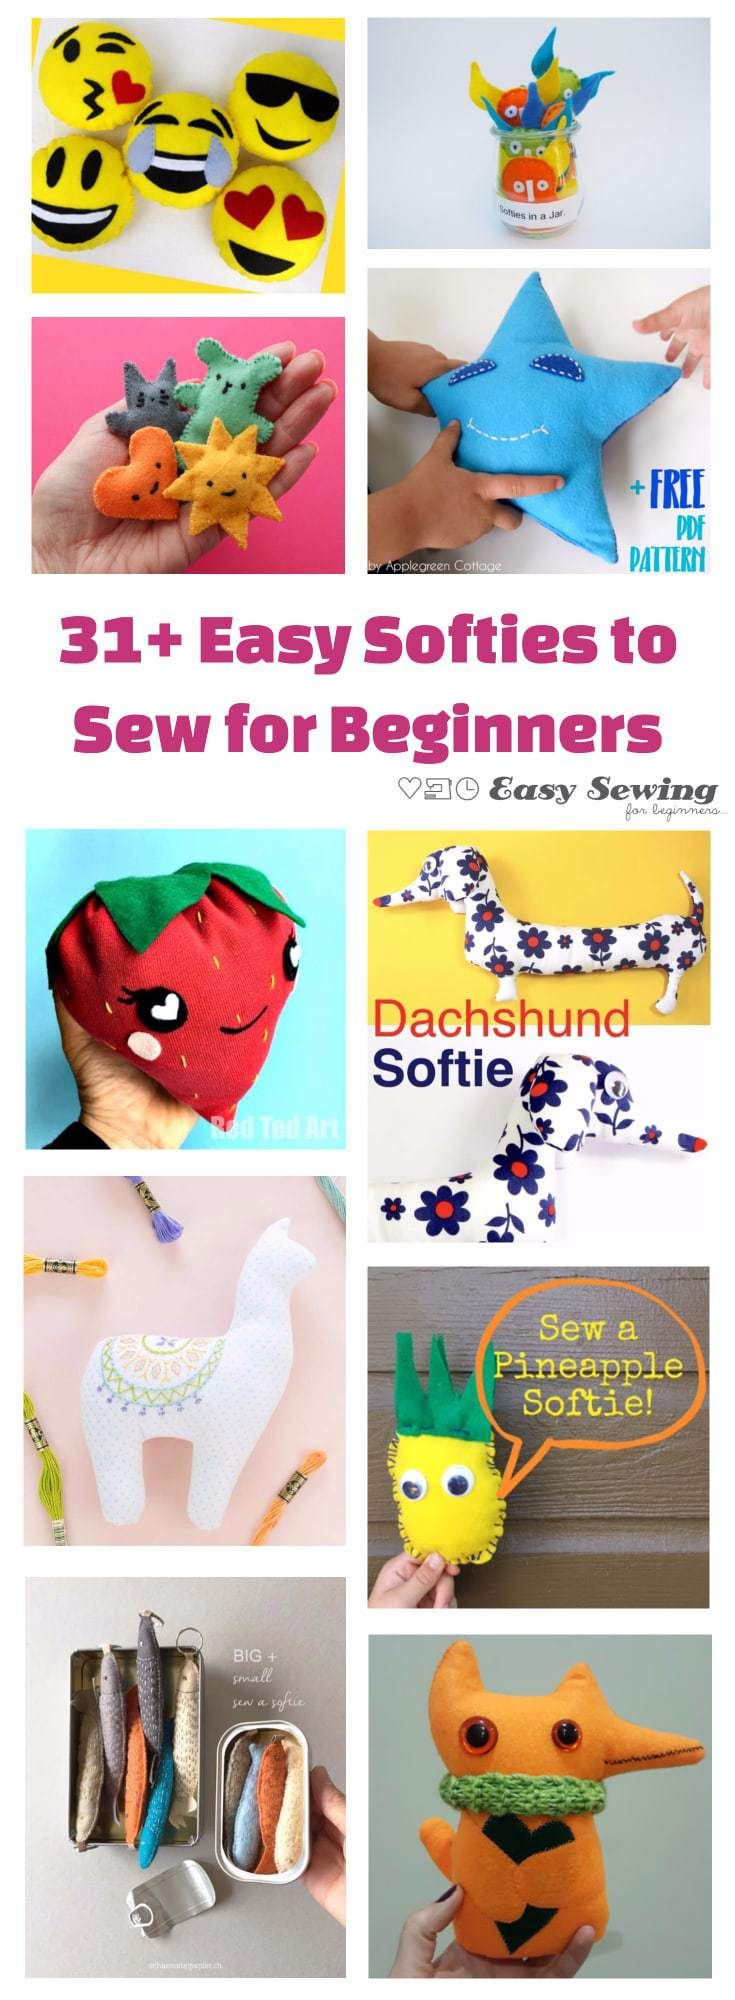 31+ Easy Softies to Sew for Beginners